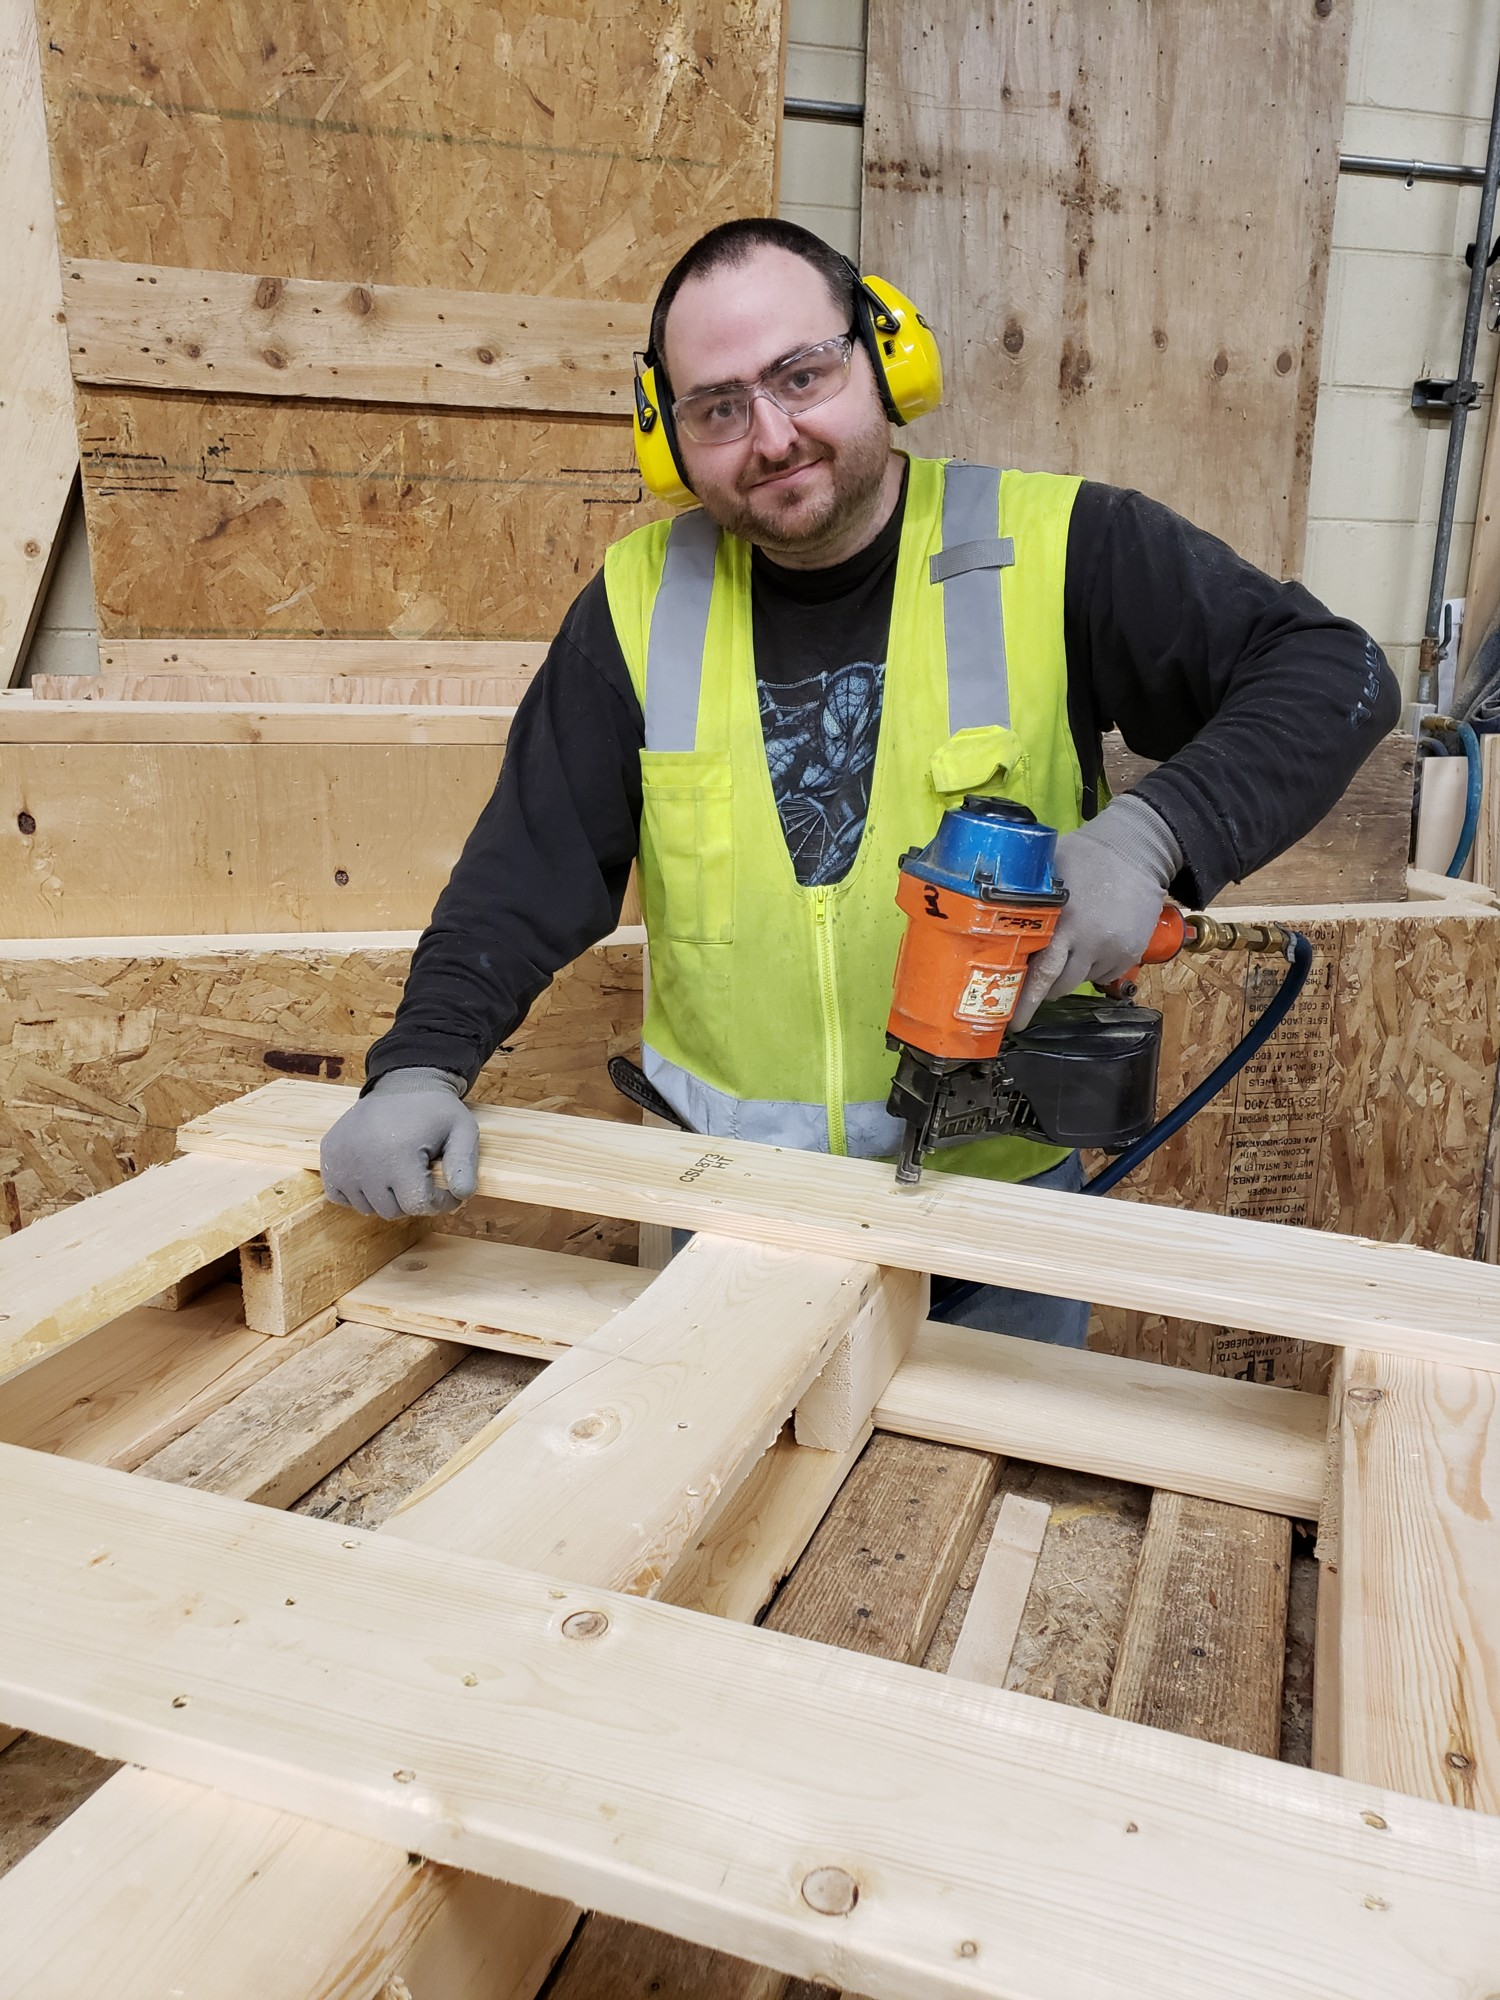 Nick in woodworking at Career Services in Brockville